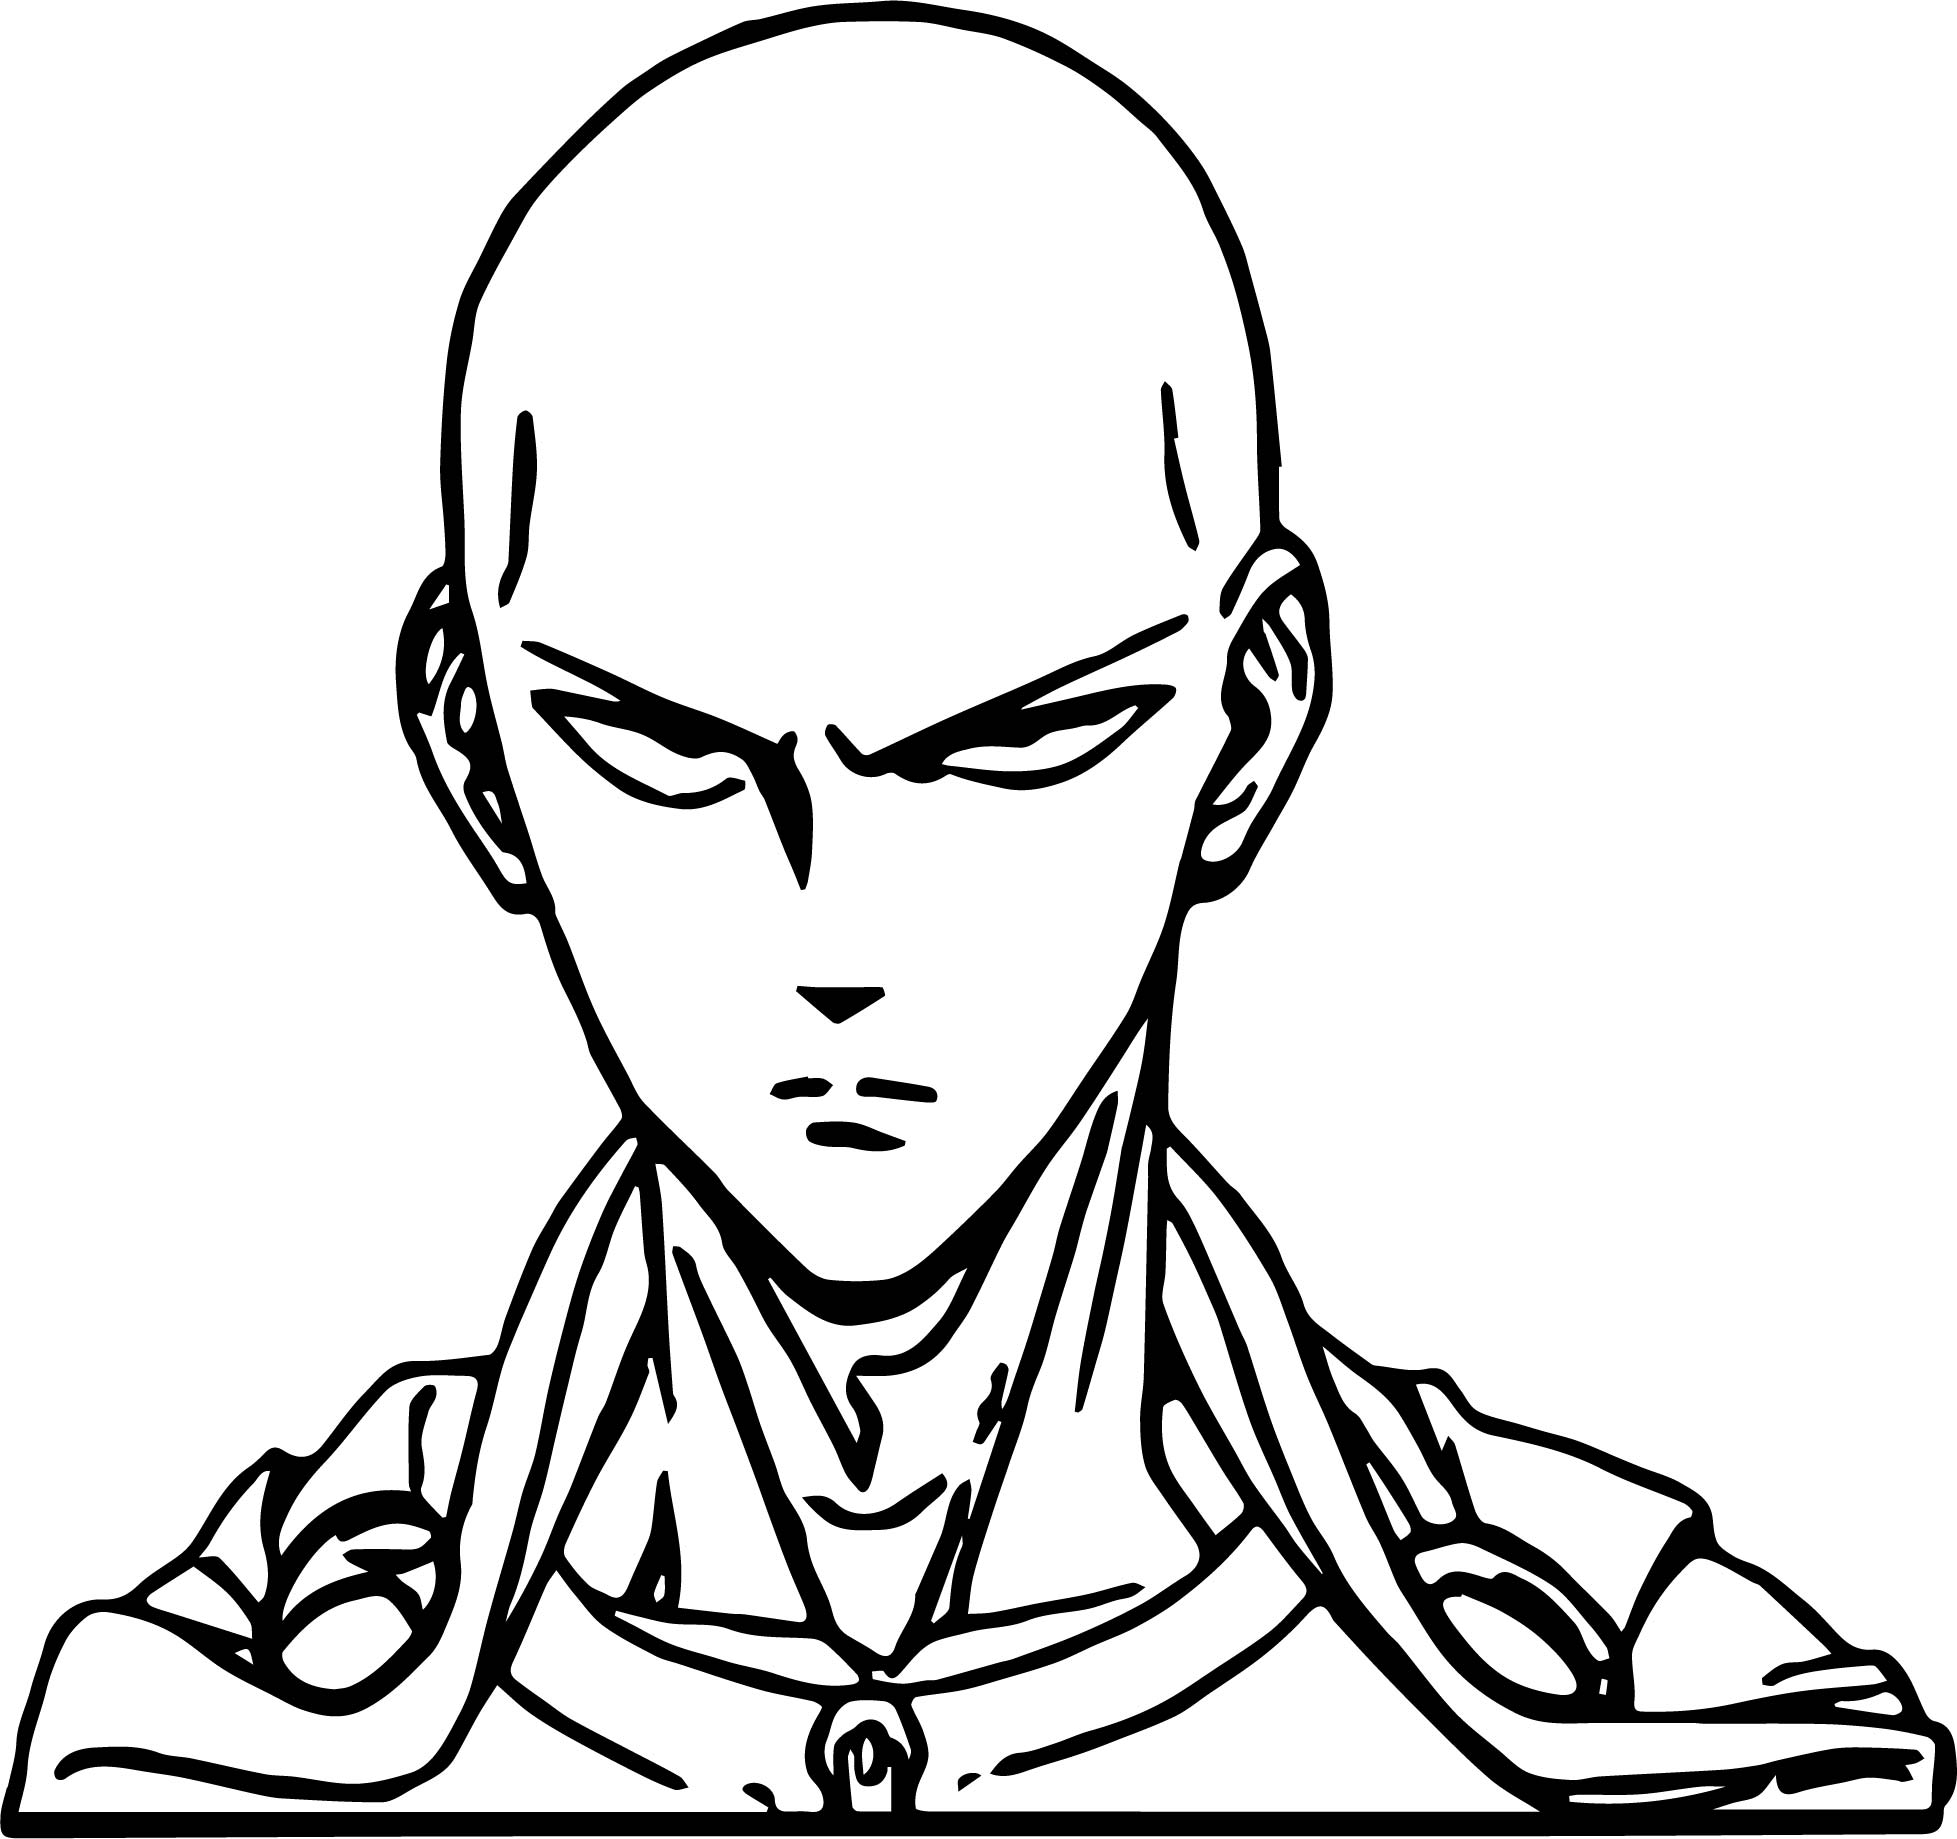 Color In Character Design : One punch man anime character design saitama coloring page